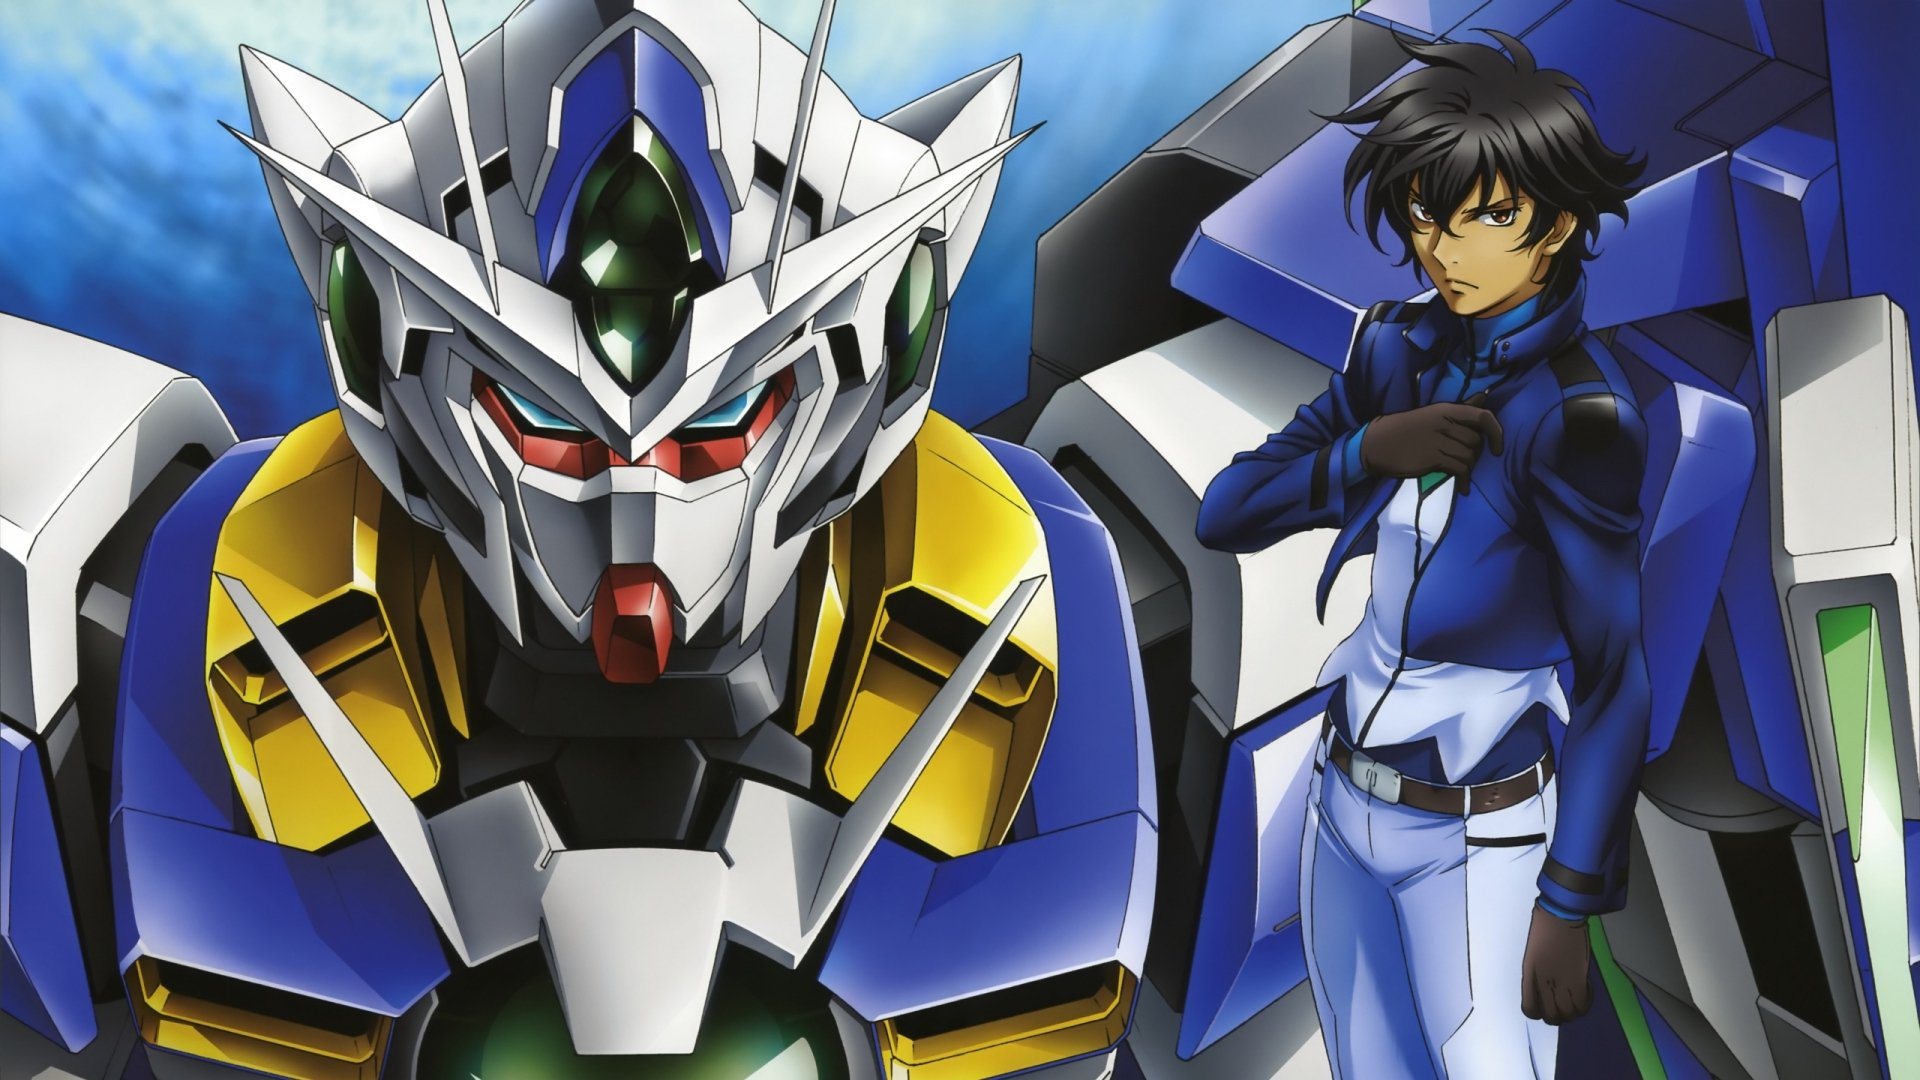 Boy Gundam Brunet Robot Pose Wallpaper Background Full HD 1080p 1920x1080